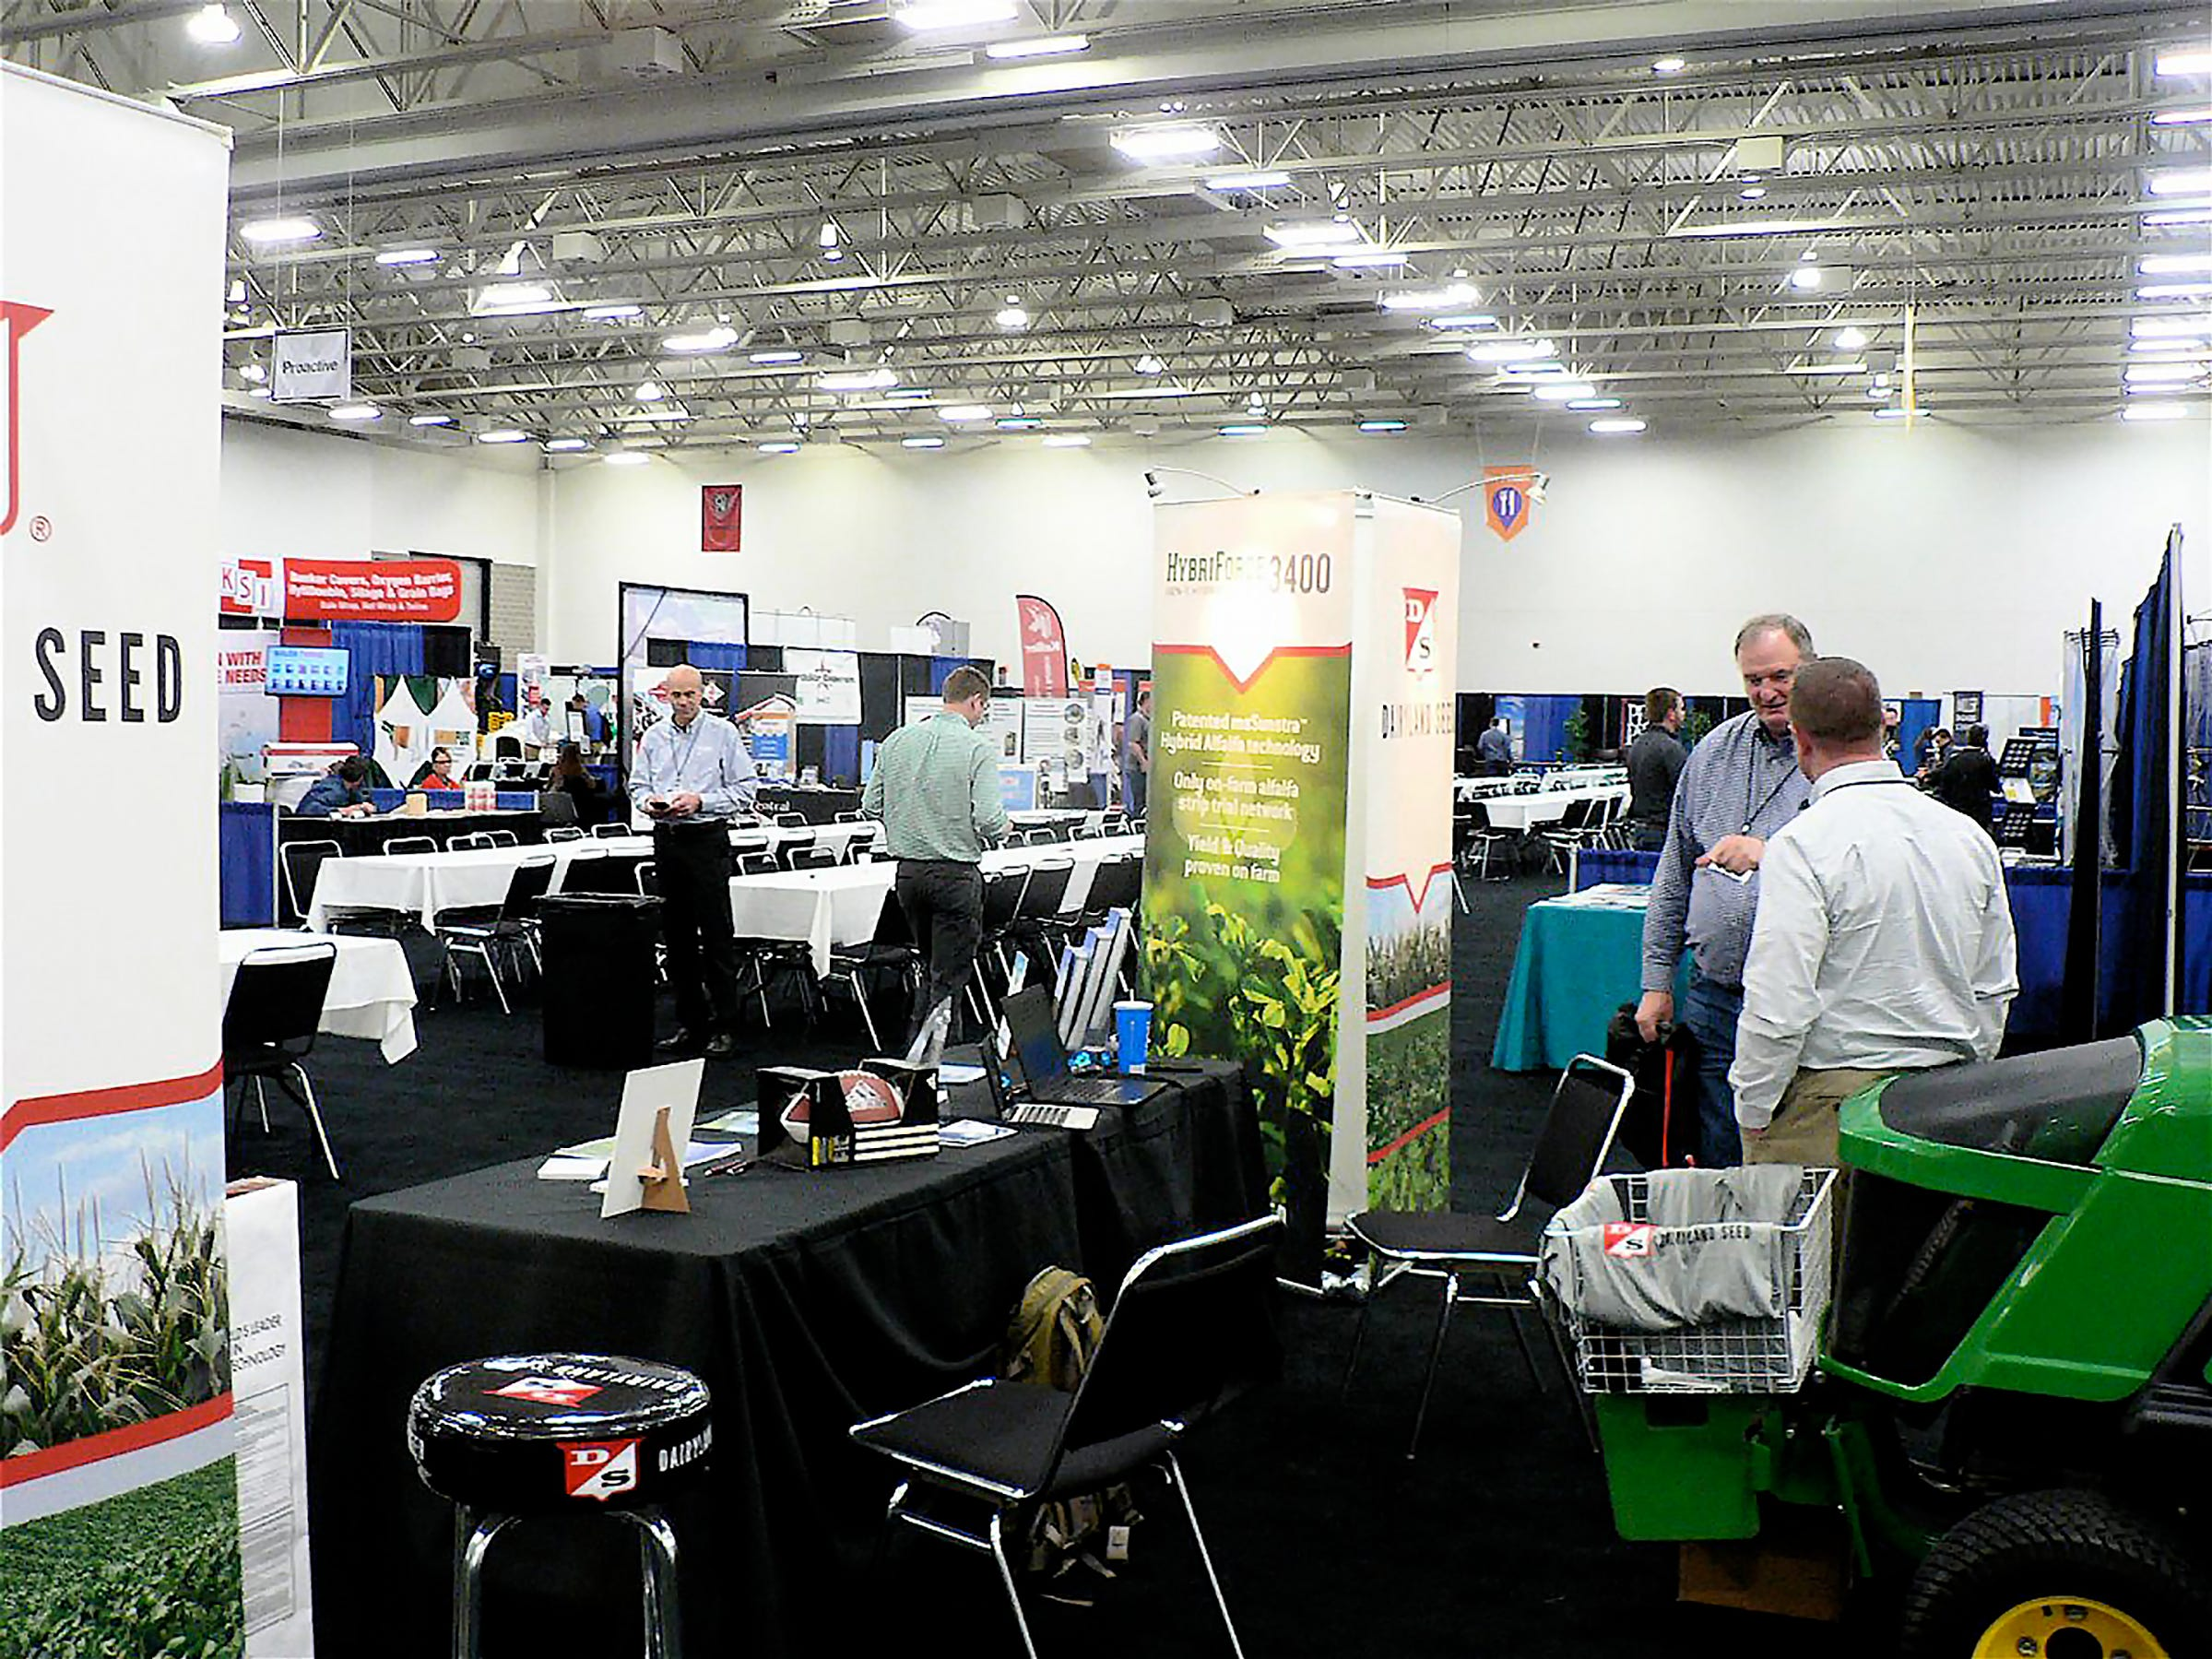 Many exhibitors did not expect to sell much but came to support the dairy industry. There were nearly 160 commercial exhibits in the Hall of Ideas.